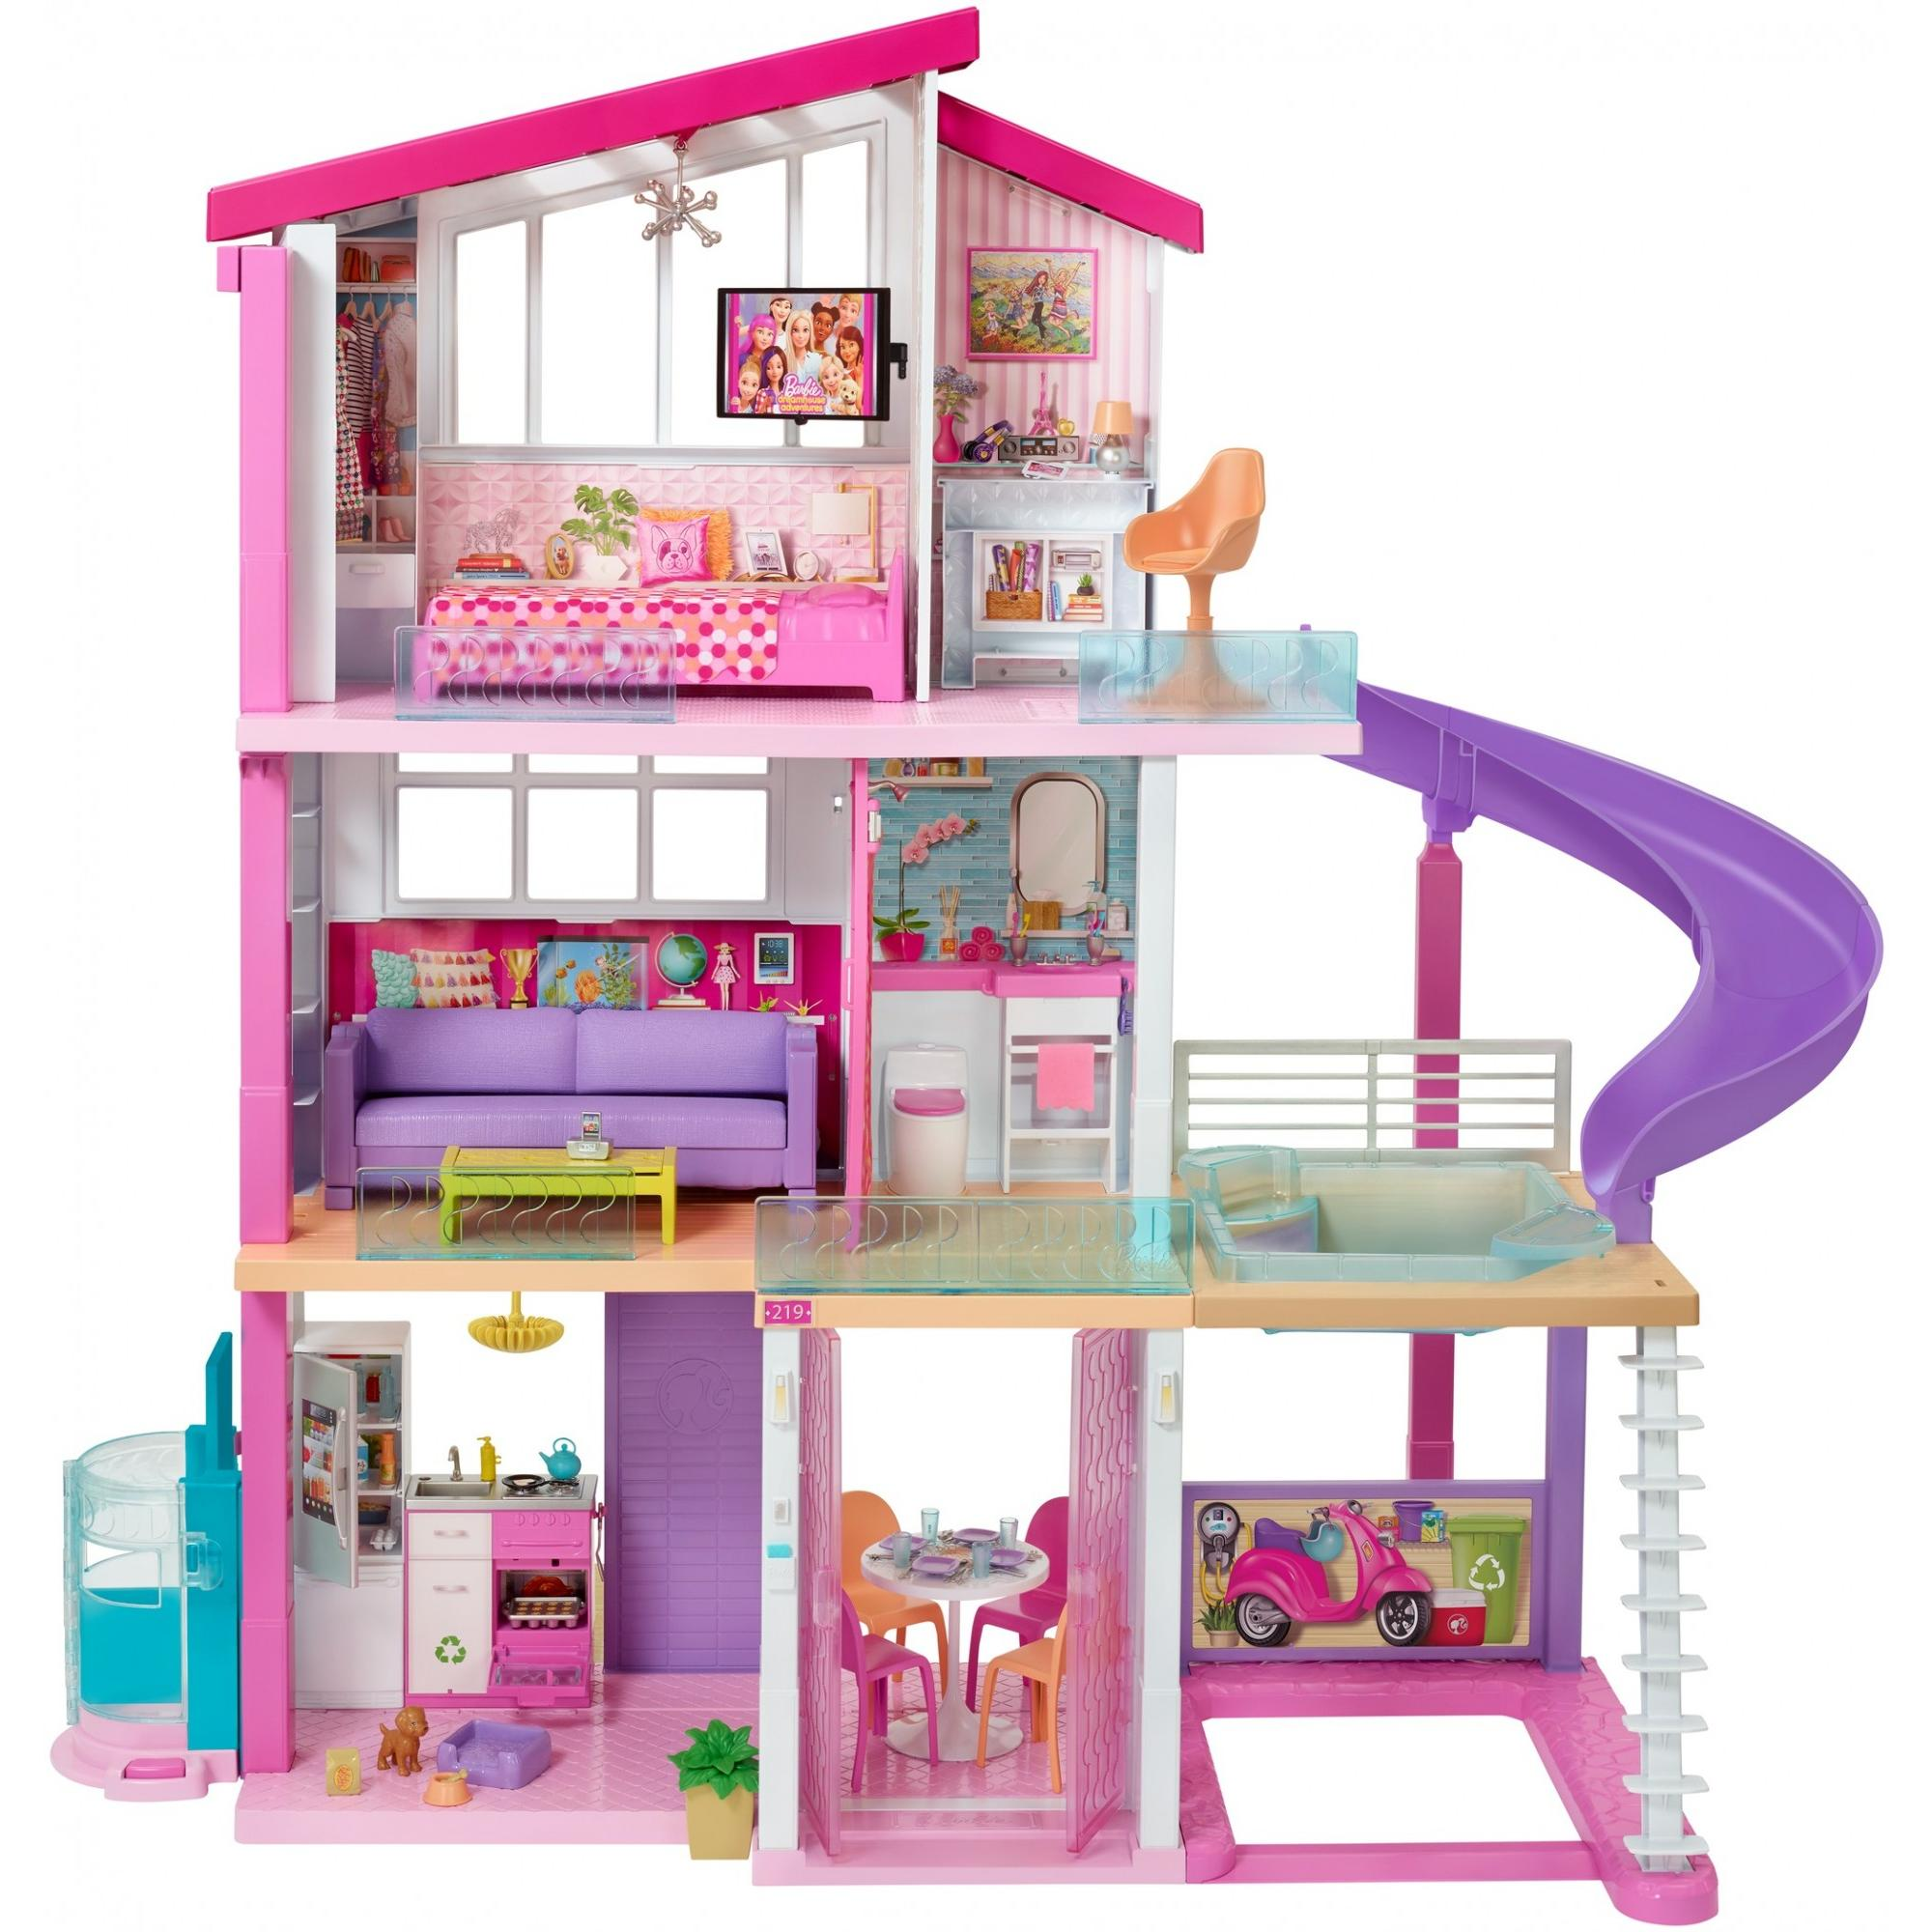 Barbie DreamHouse by Mattel